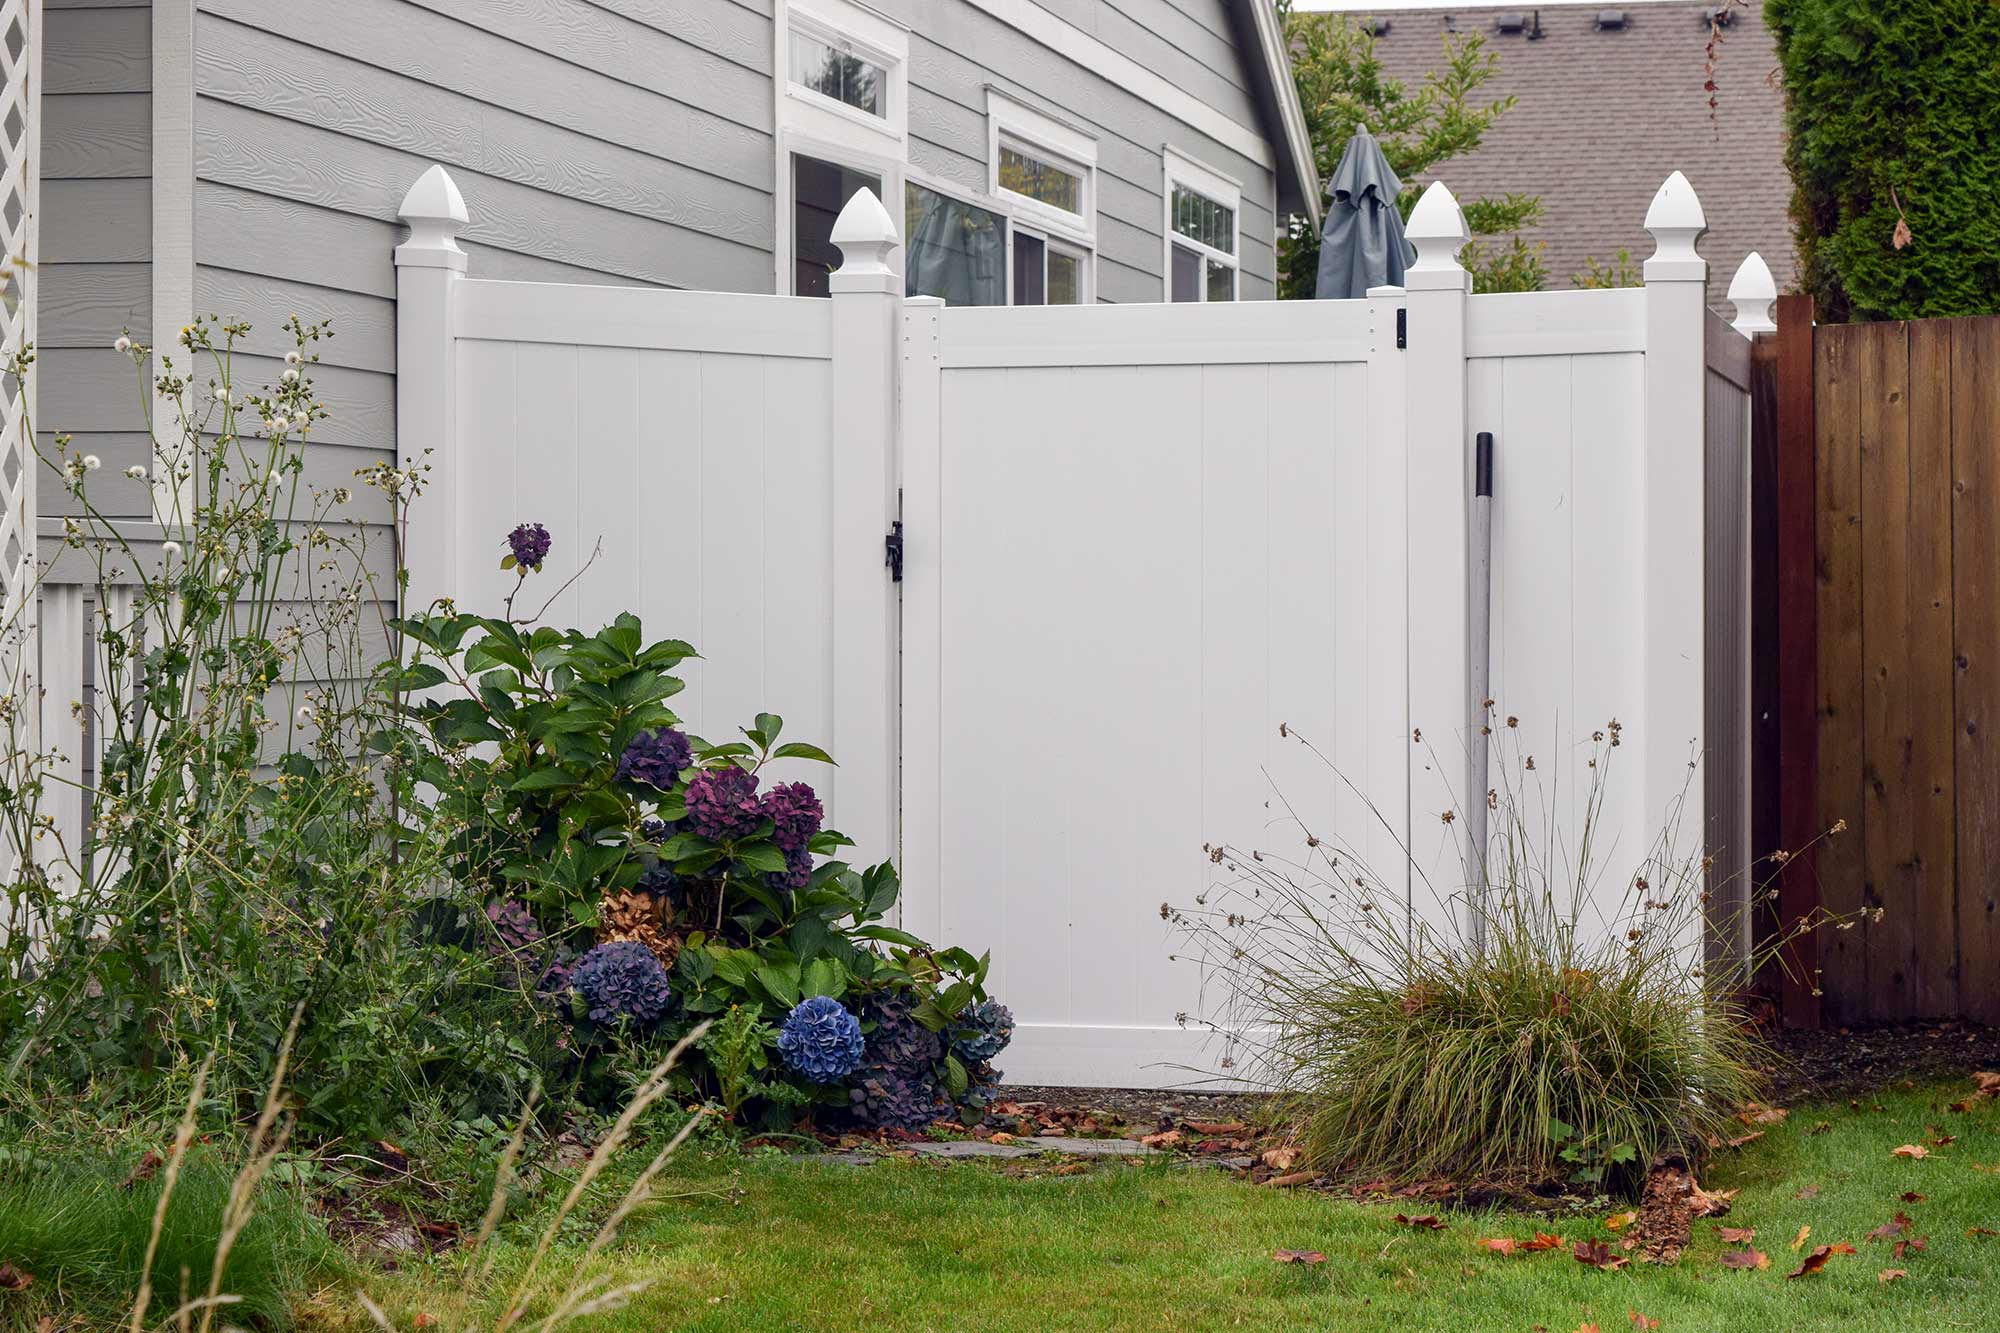 Vinyl Fence Example In Dupont. Vinyl Fences Are Easy To Maintain And Come  In A